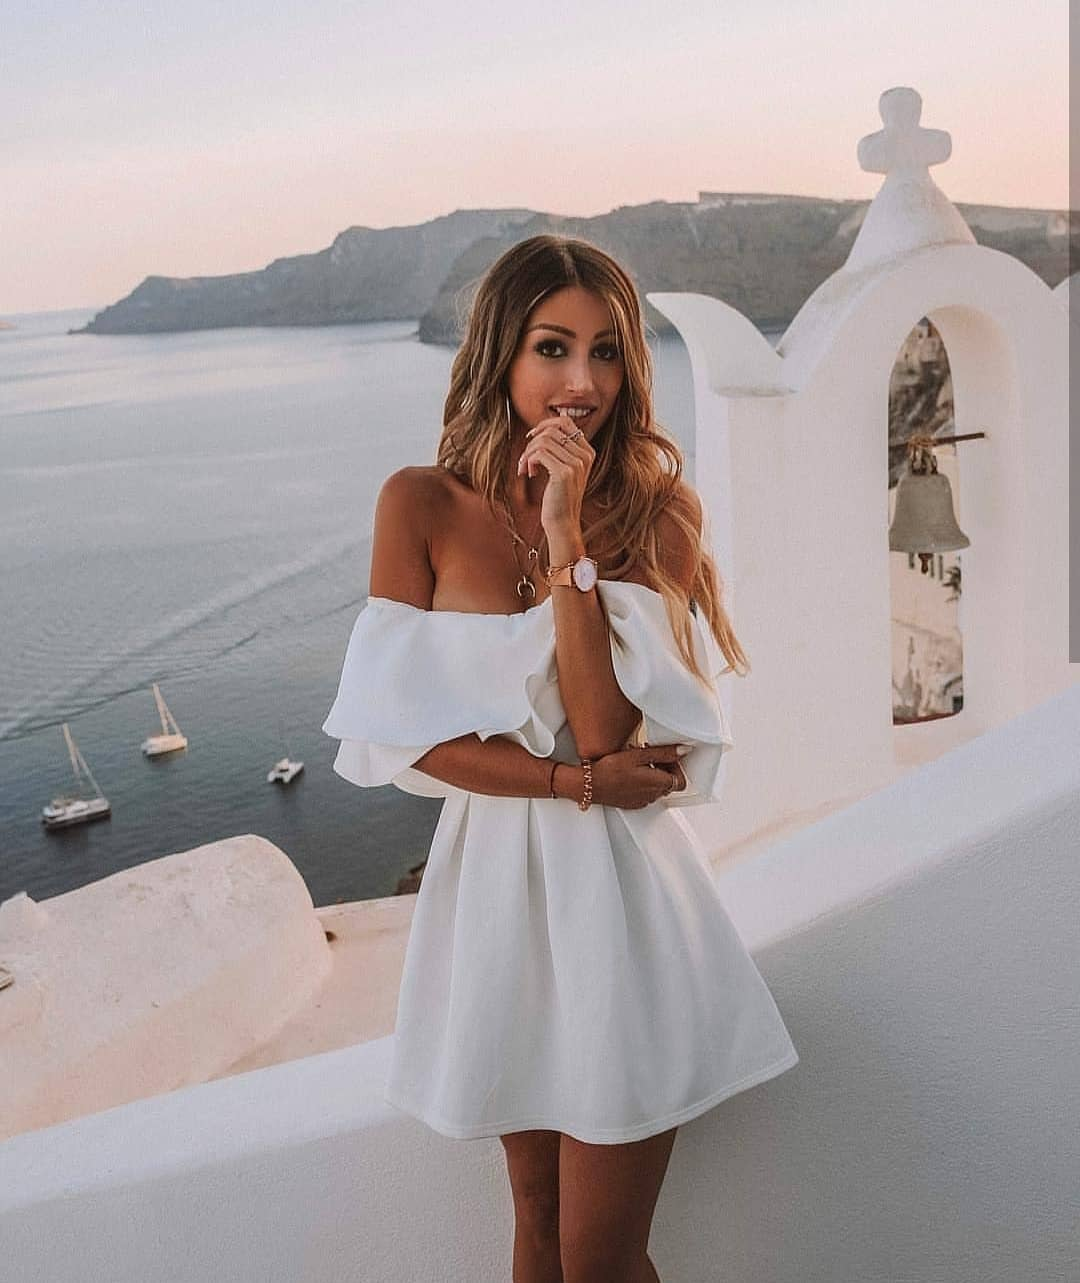 Can You Wear White Off-Shoulder Dress In Santorini This Summer 2019